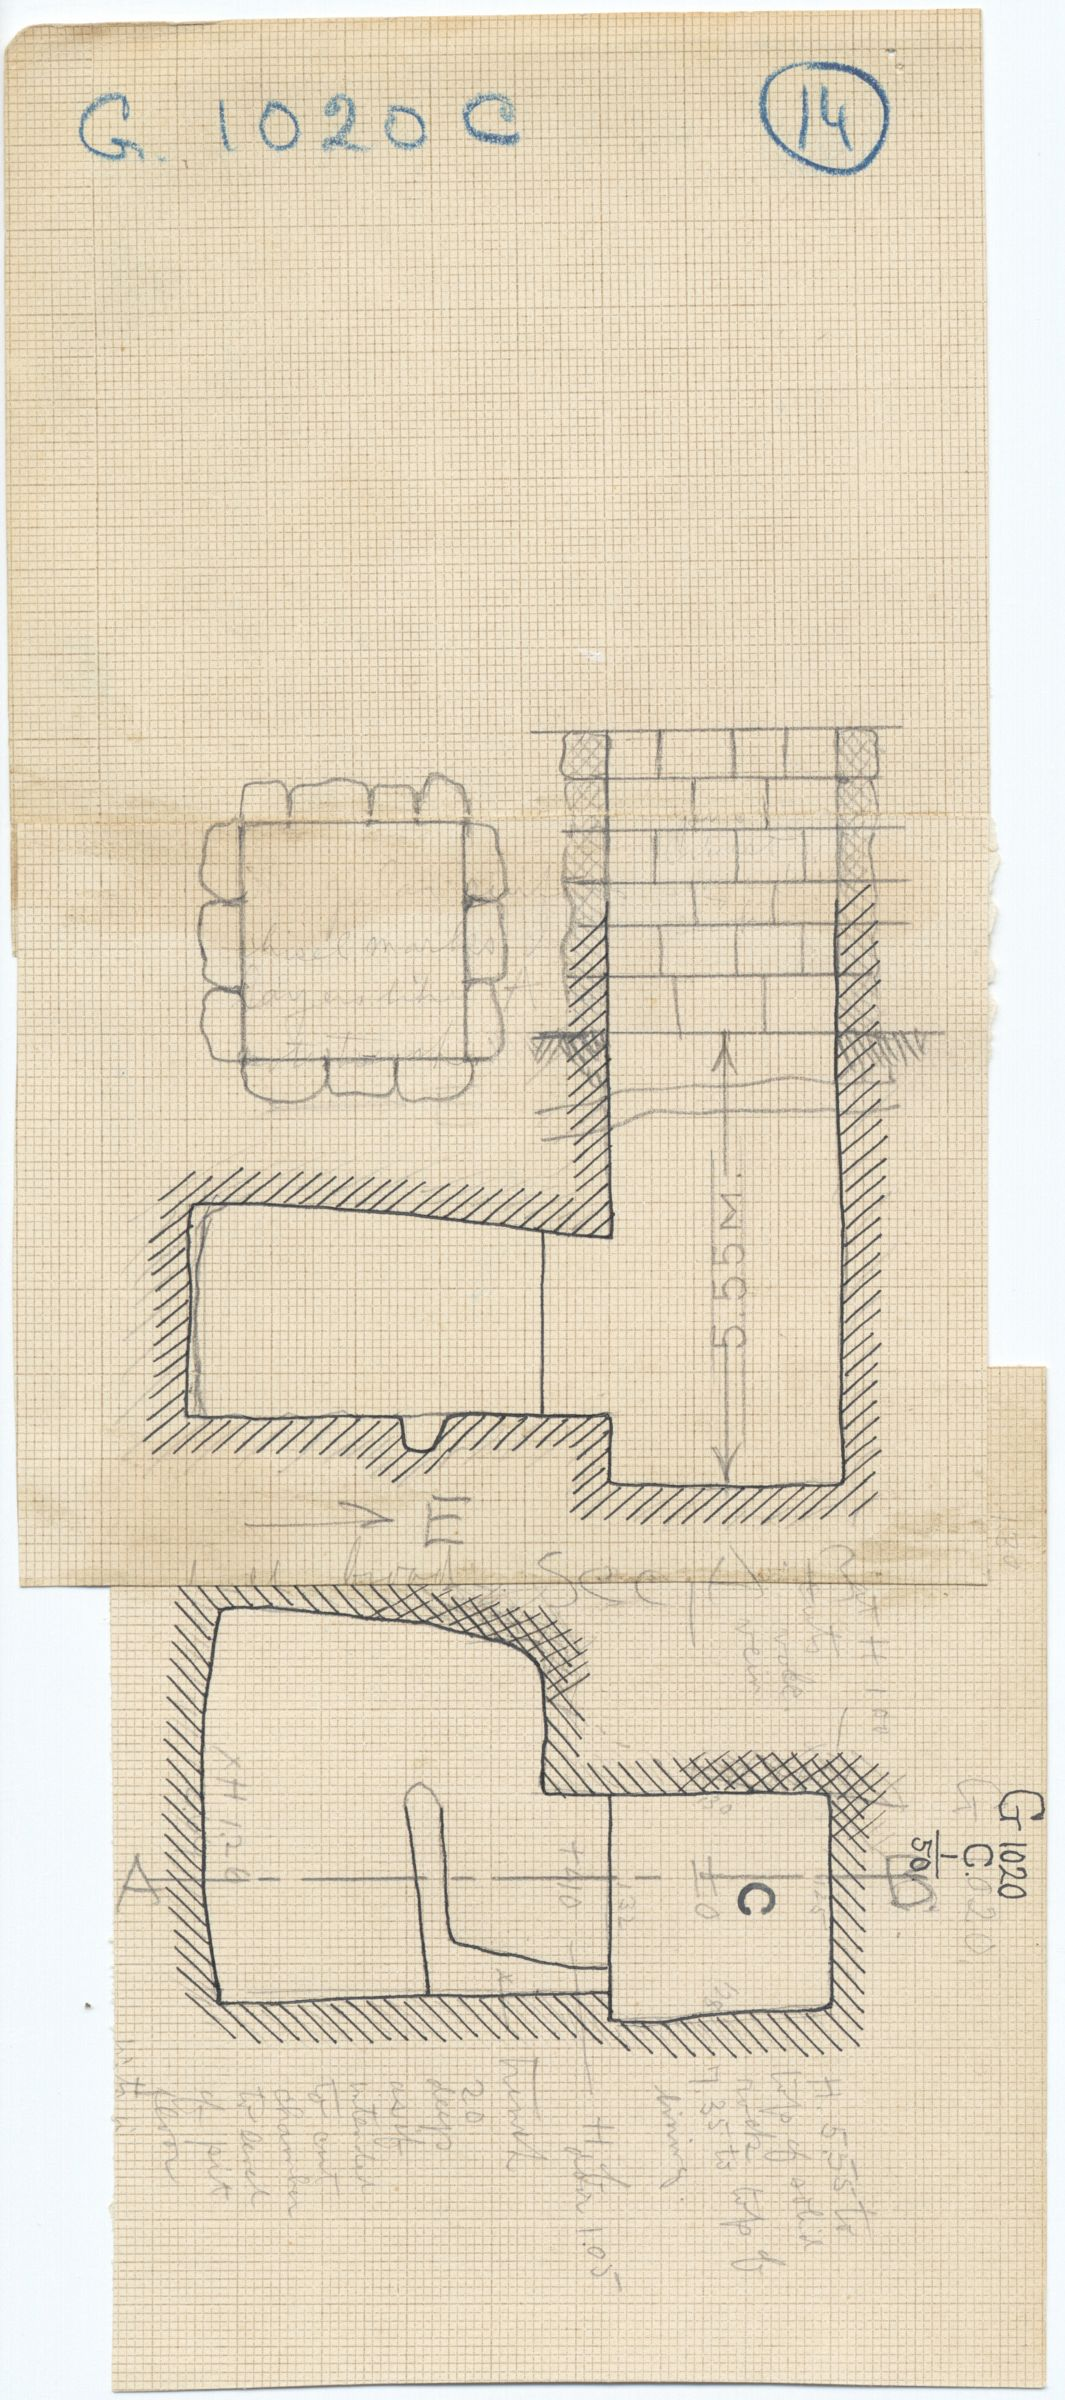 Maps and plans: G 1020, Shaft C